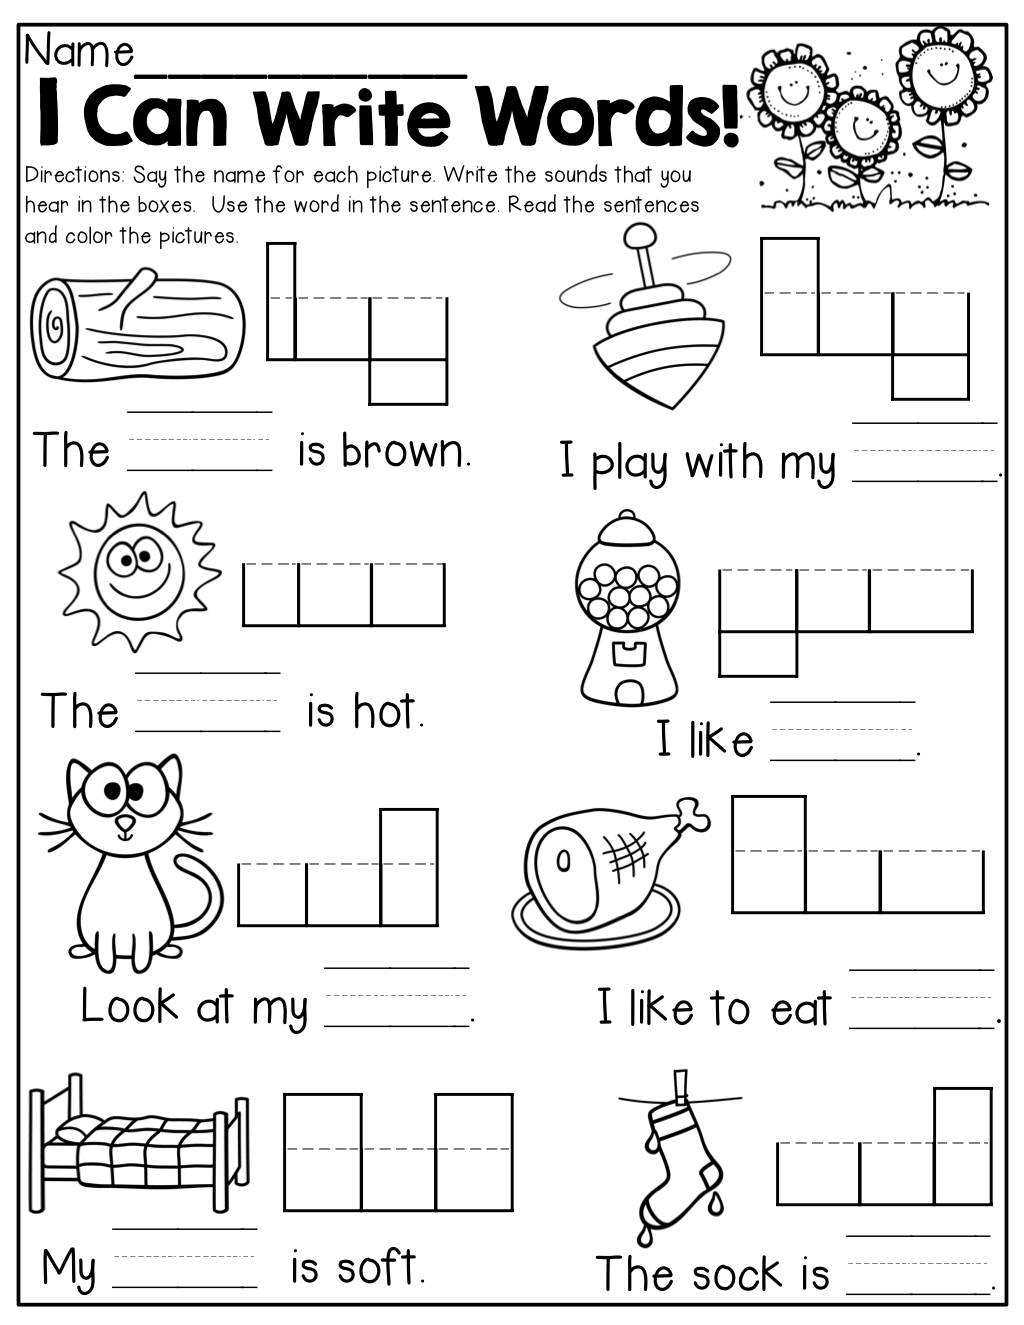 worksheet Sentence Structure Worksheets For Kindergarten i can write words read and simple with sentences like how it integrates sight word reading spelling structures